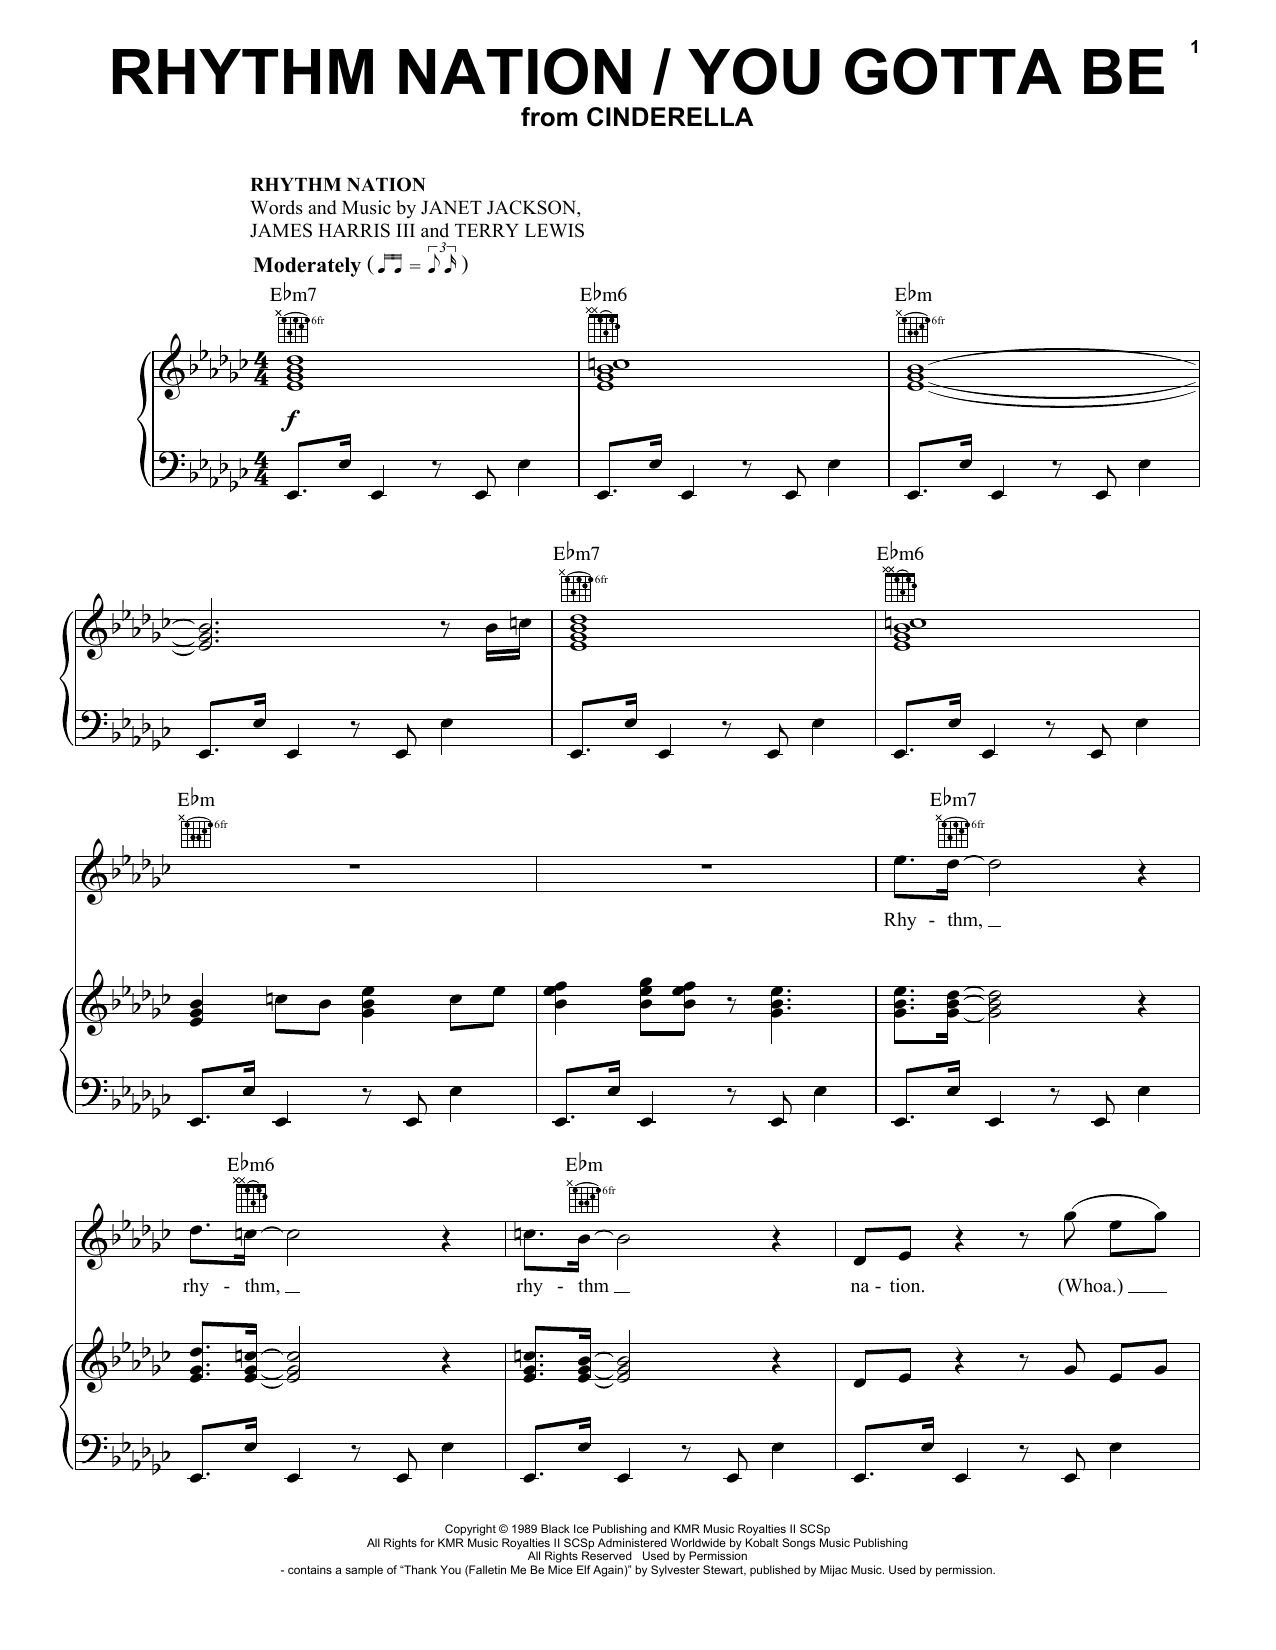 Camila Cabello and Idina Menzel Rhythm Nation / You Gotta Be (from the Amazon Original Movie Cinderella) sheet music notes and chords. Download Printable PDF.